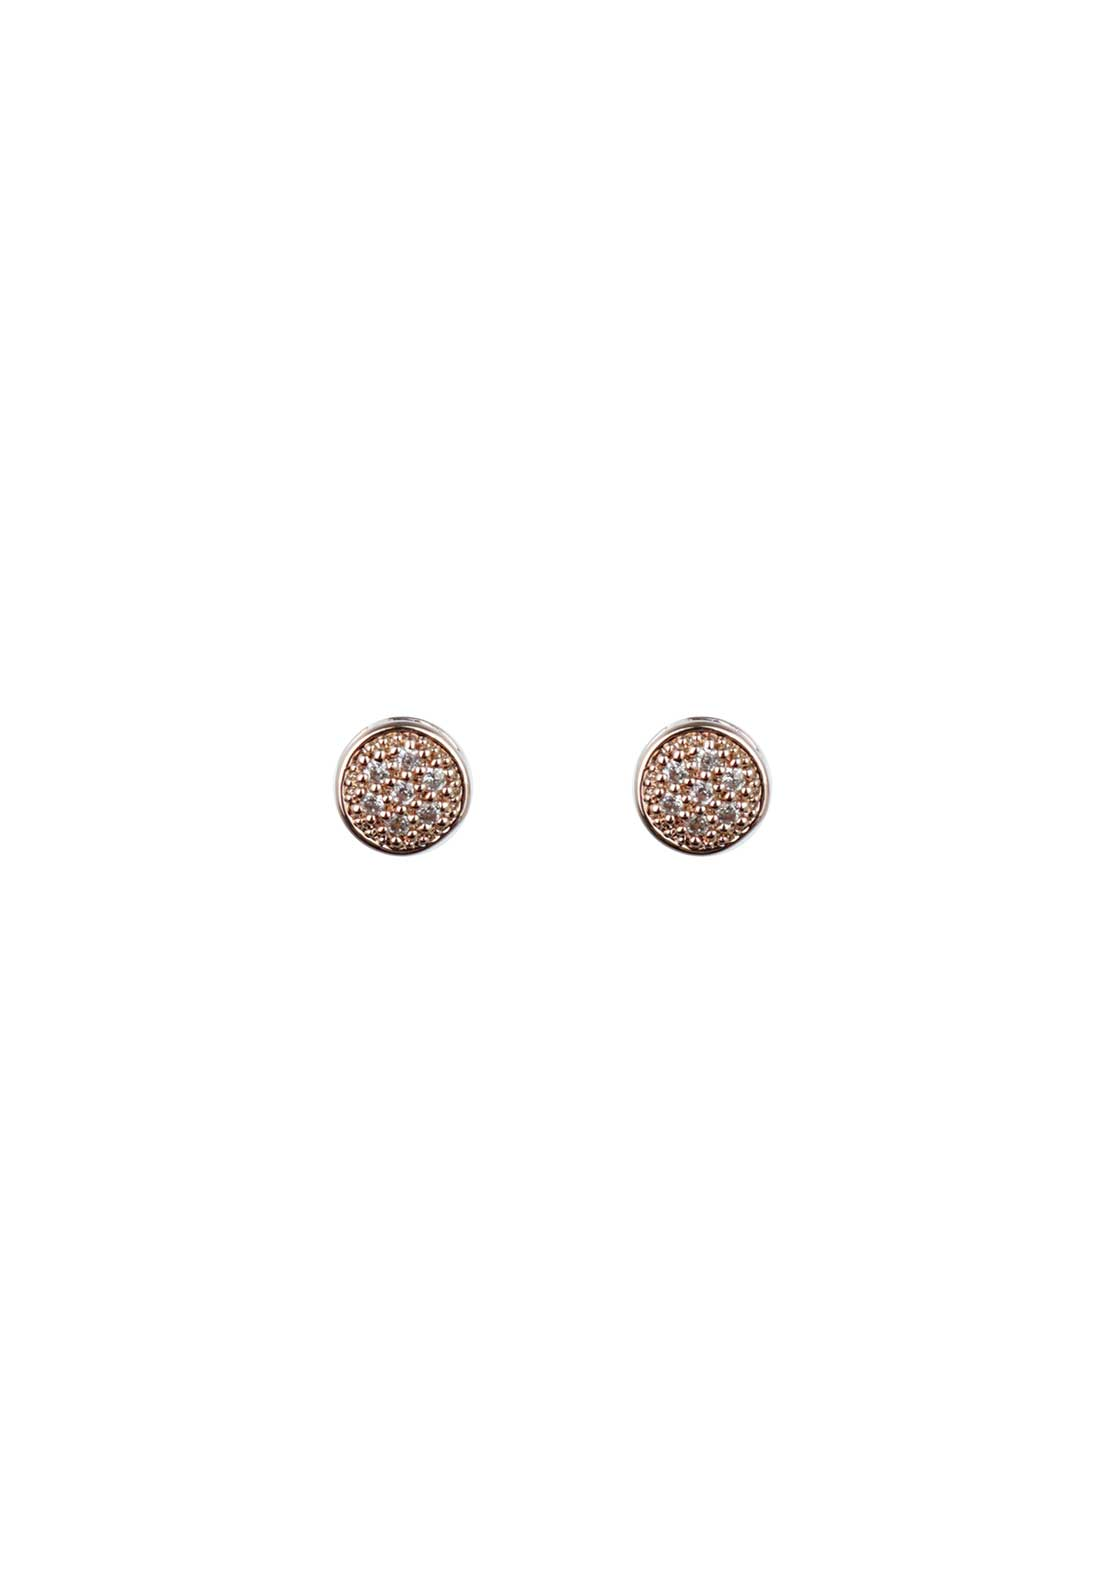 Absolute Jewellery Girls Tiny Pave Stud Earrings, Rose Gold